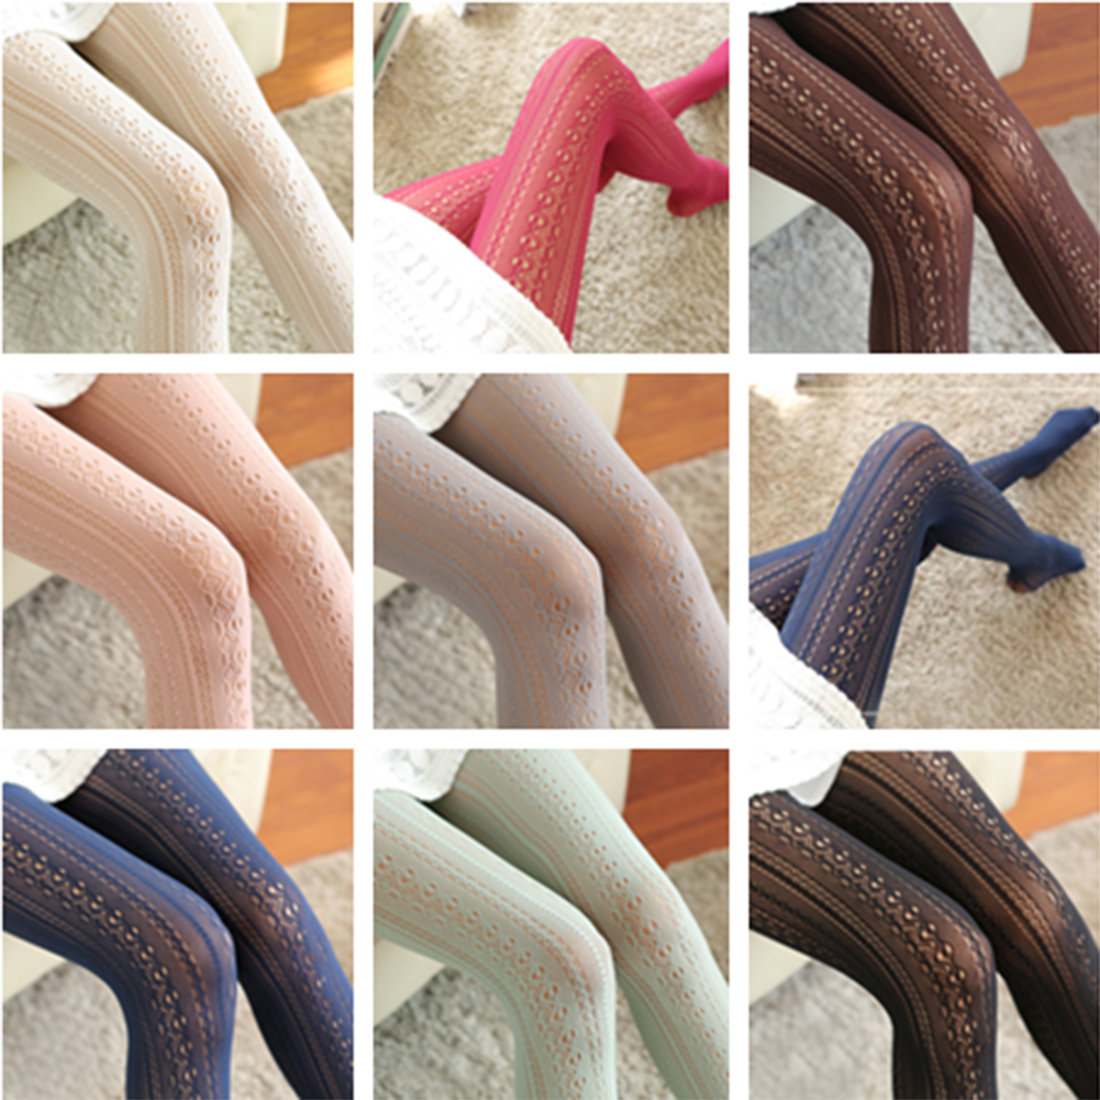 Elegant Design Hollow out Lace Fishnet Stockings Sexy Lace Pantyhose for women girls tights